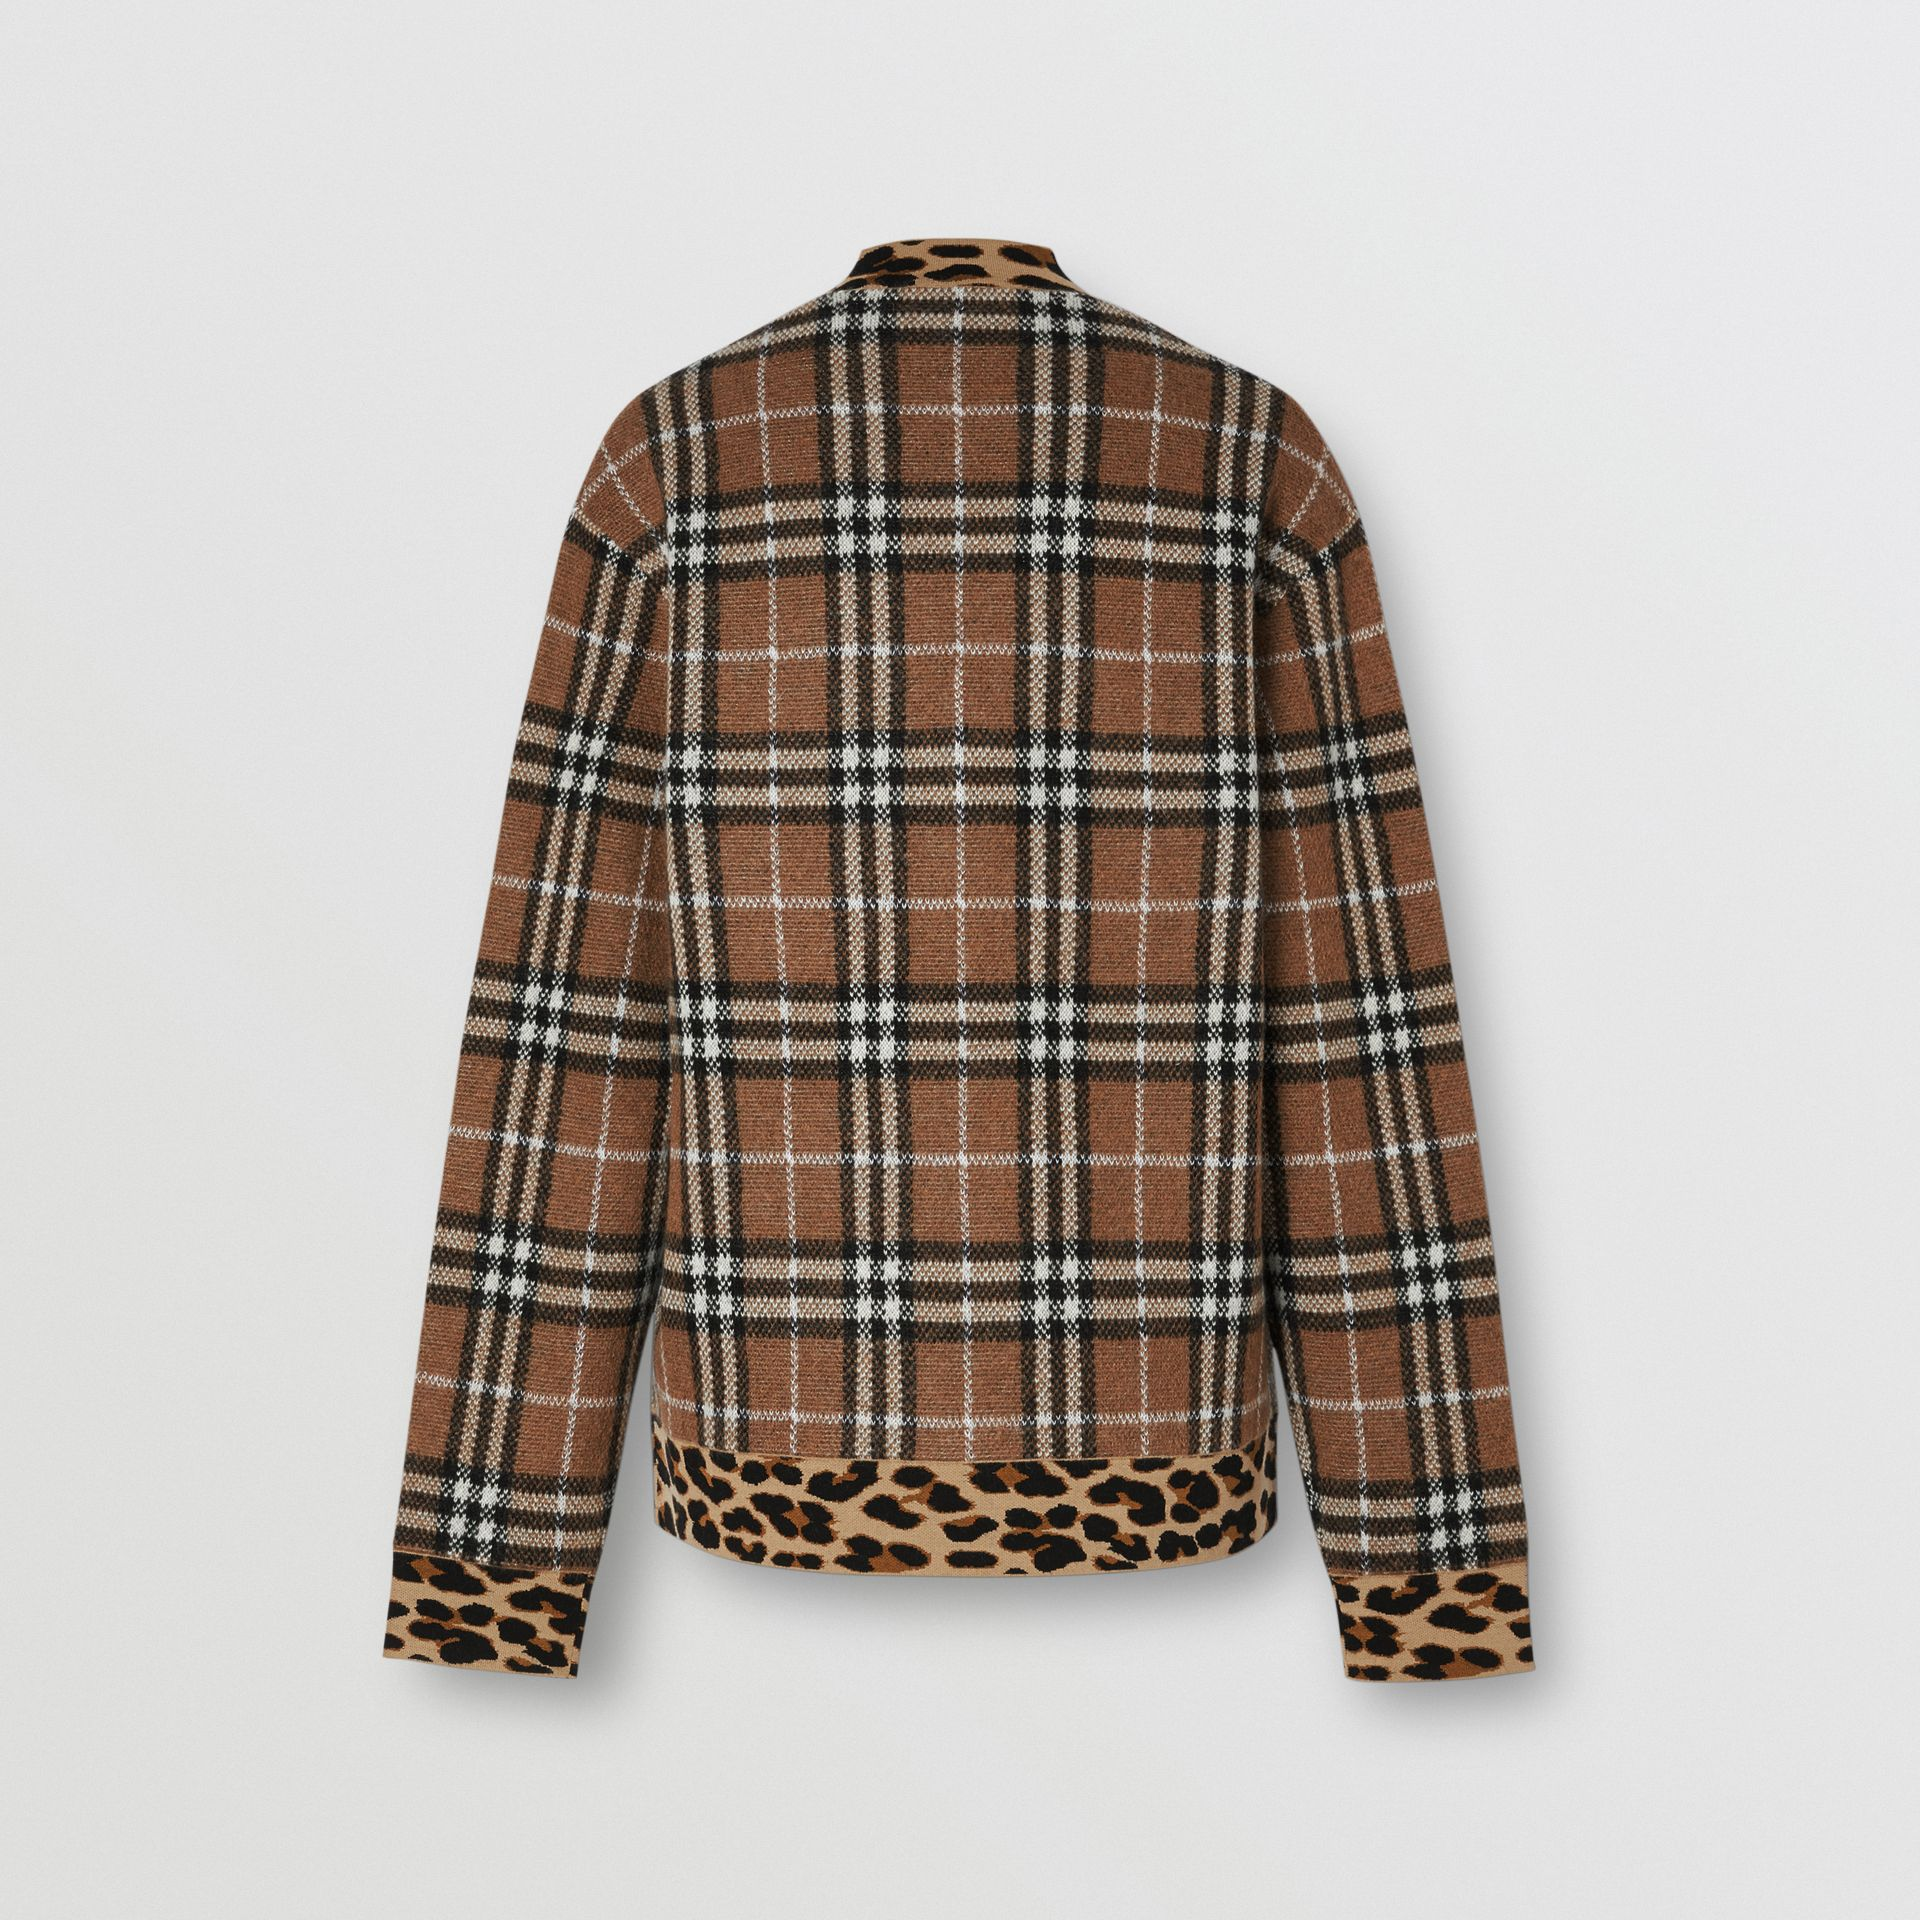 Leopard Detail Vintage Check Cashmere Blend Sweater in Archive Beige - Women | Burberry - gallery image 6